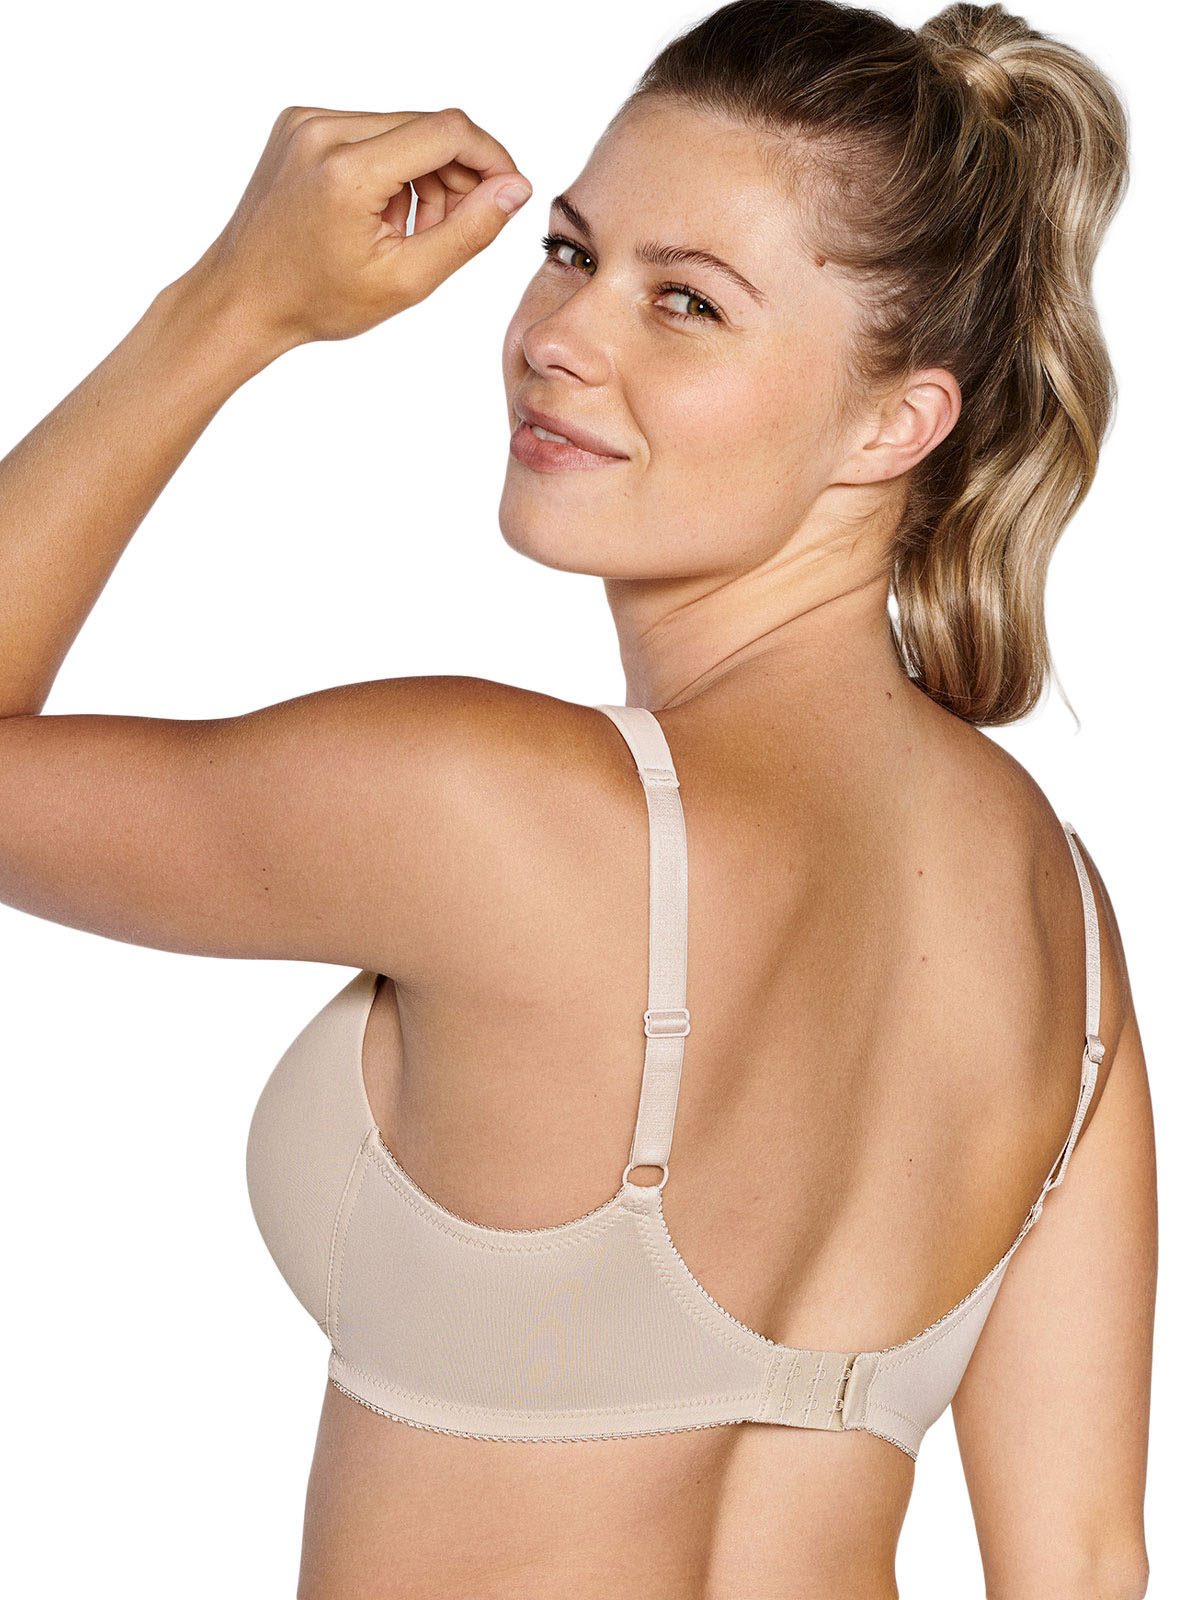 Padded Soft Bra 5266 Size 32-44 Cup A-D